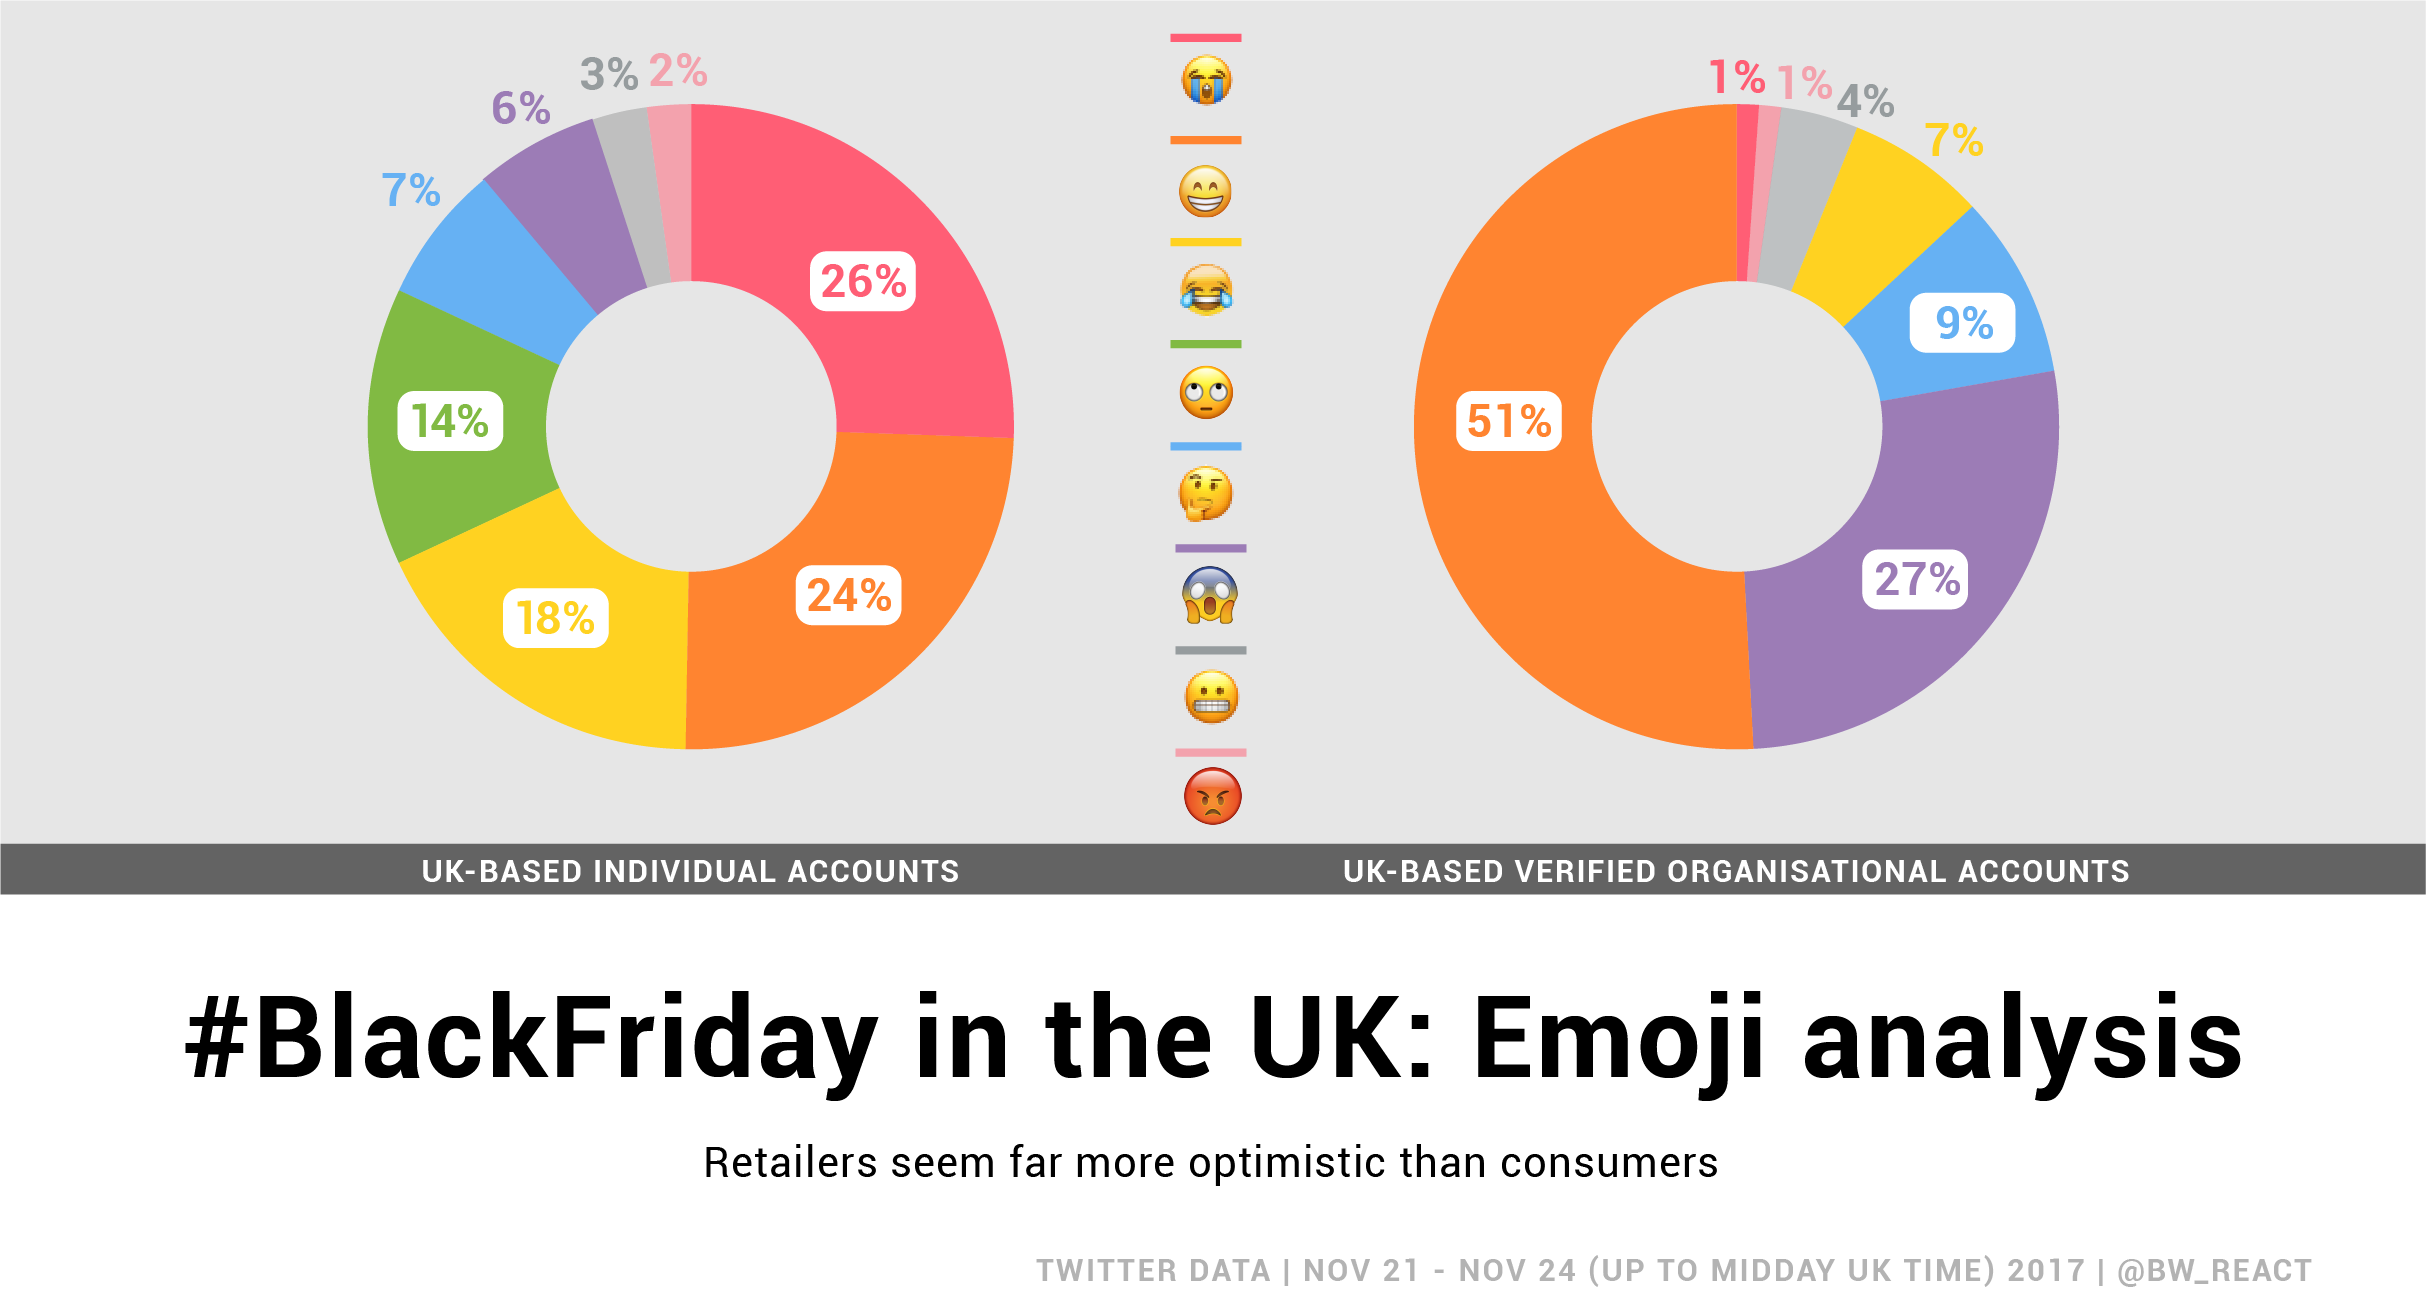 Black friday 2017 data shows that consumers are more likely to use negative emojis in their tweets than organizational accounts (like retail chains). The biggest emoji used in consumer conversation is the sad/crying face while in the organizational accounts it's smiling faces.